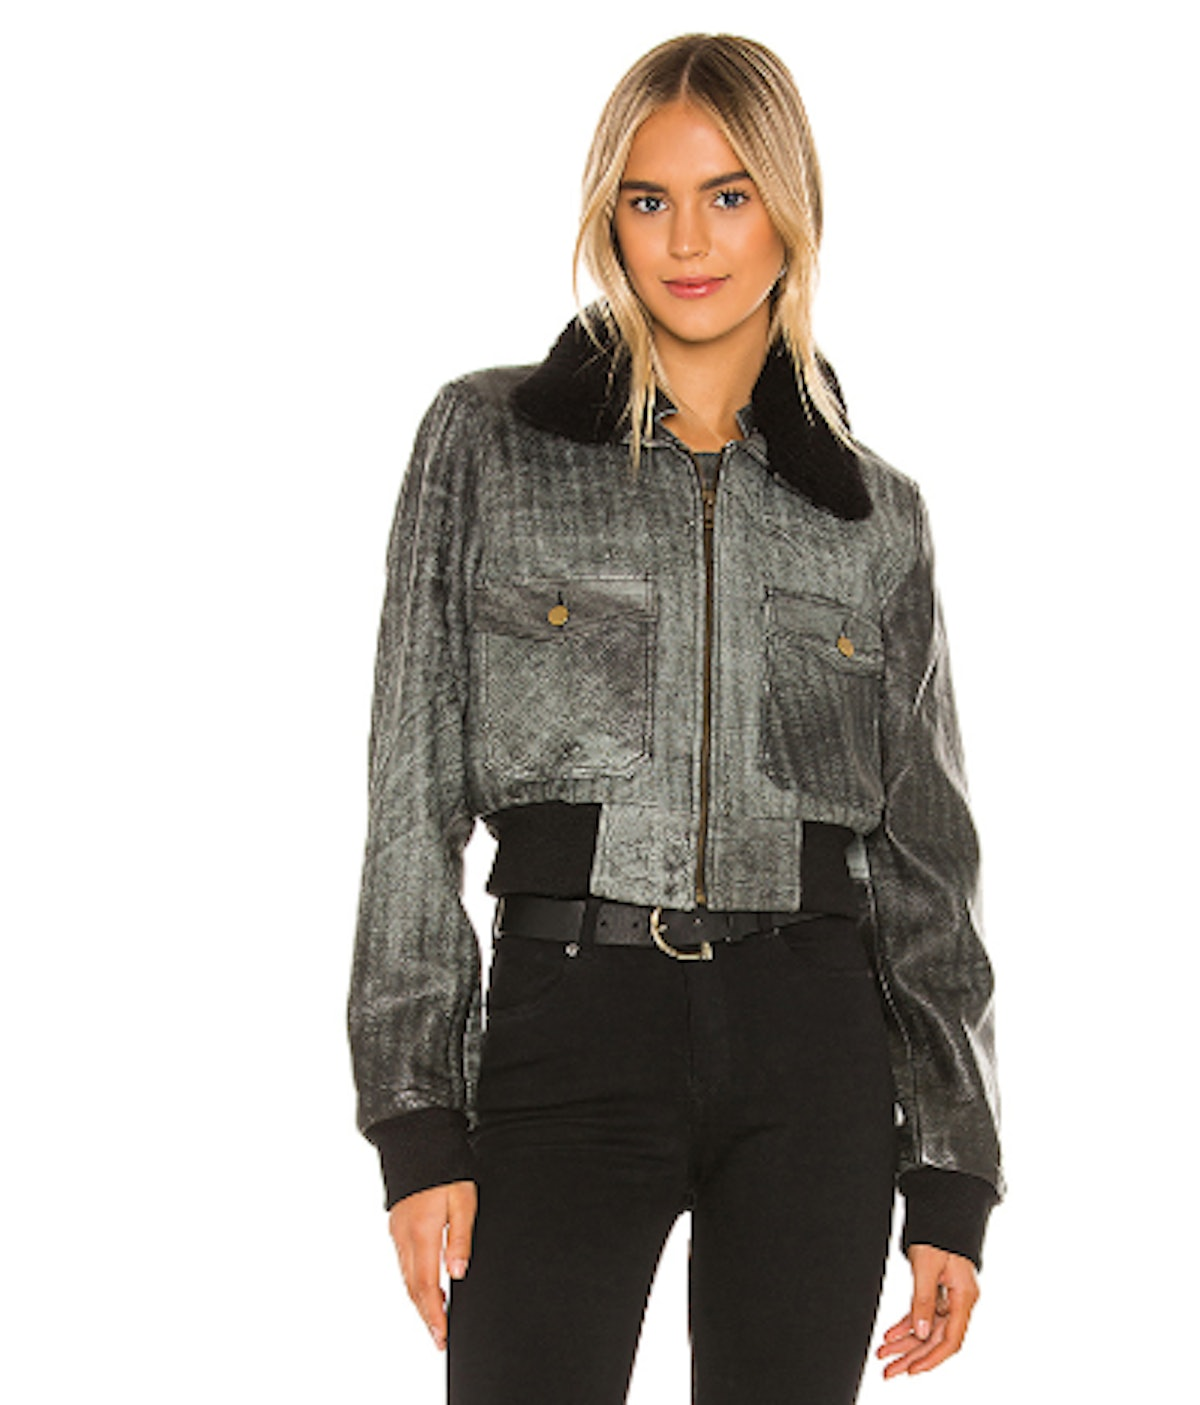 Spirit Bomber Jacket With Shearling Collar